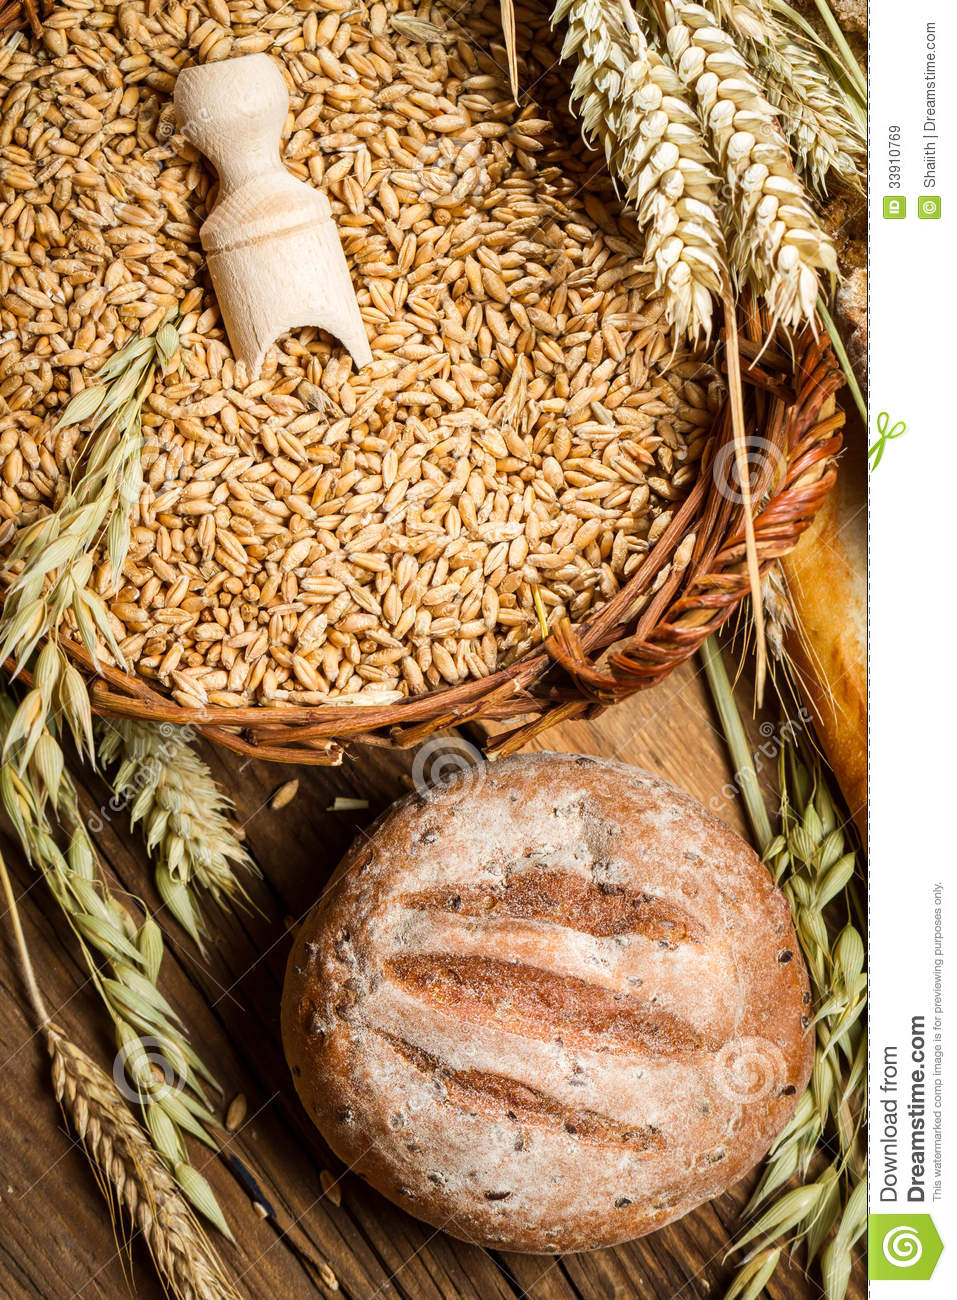 Whole grain bread with a basket full of grains